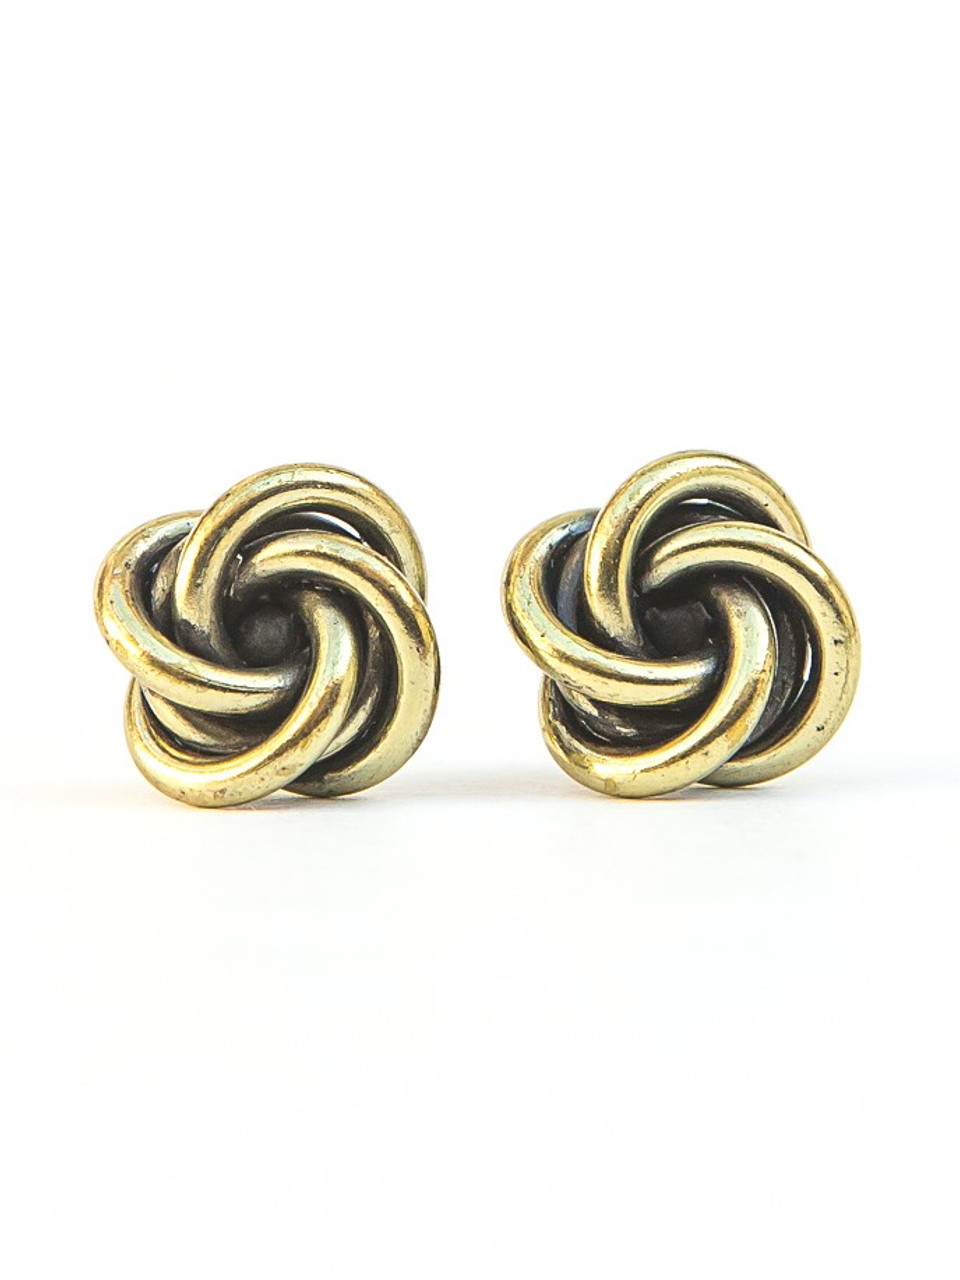 Details about  /Gold Knot Earrings Knot Stud Earrings Yellow Gold Studs